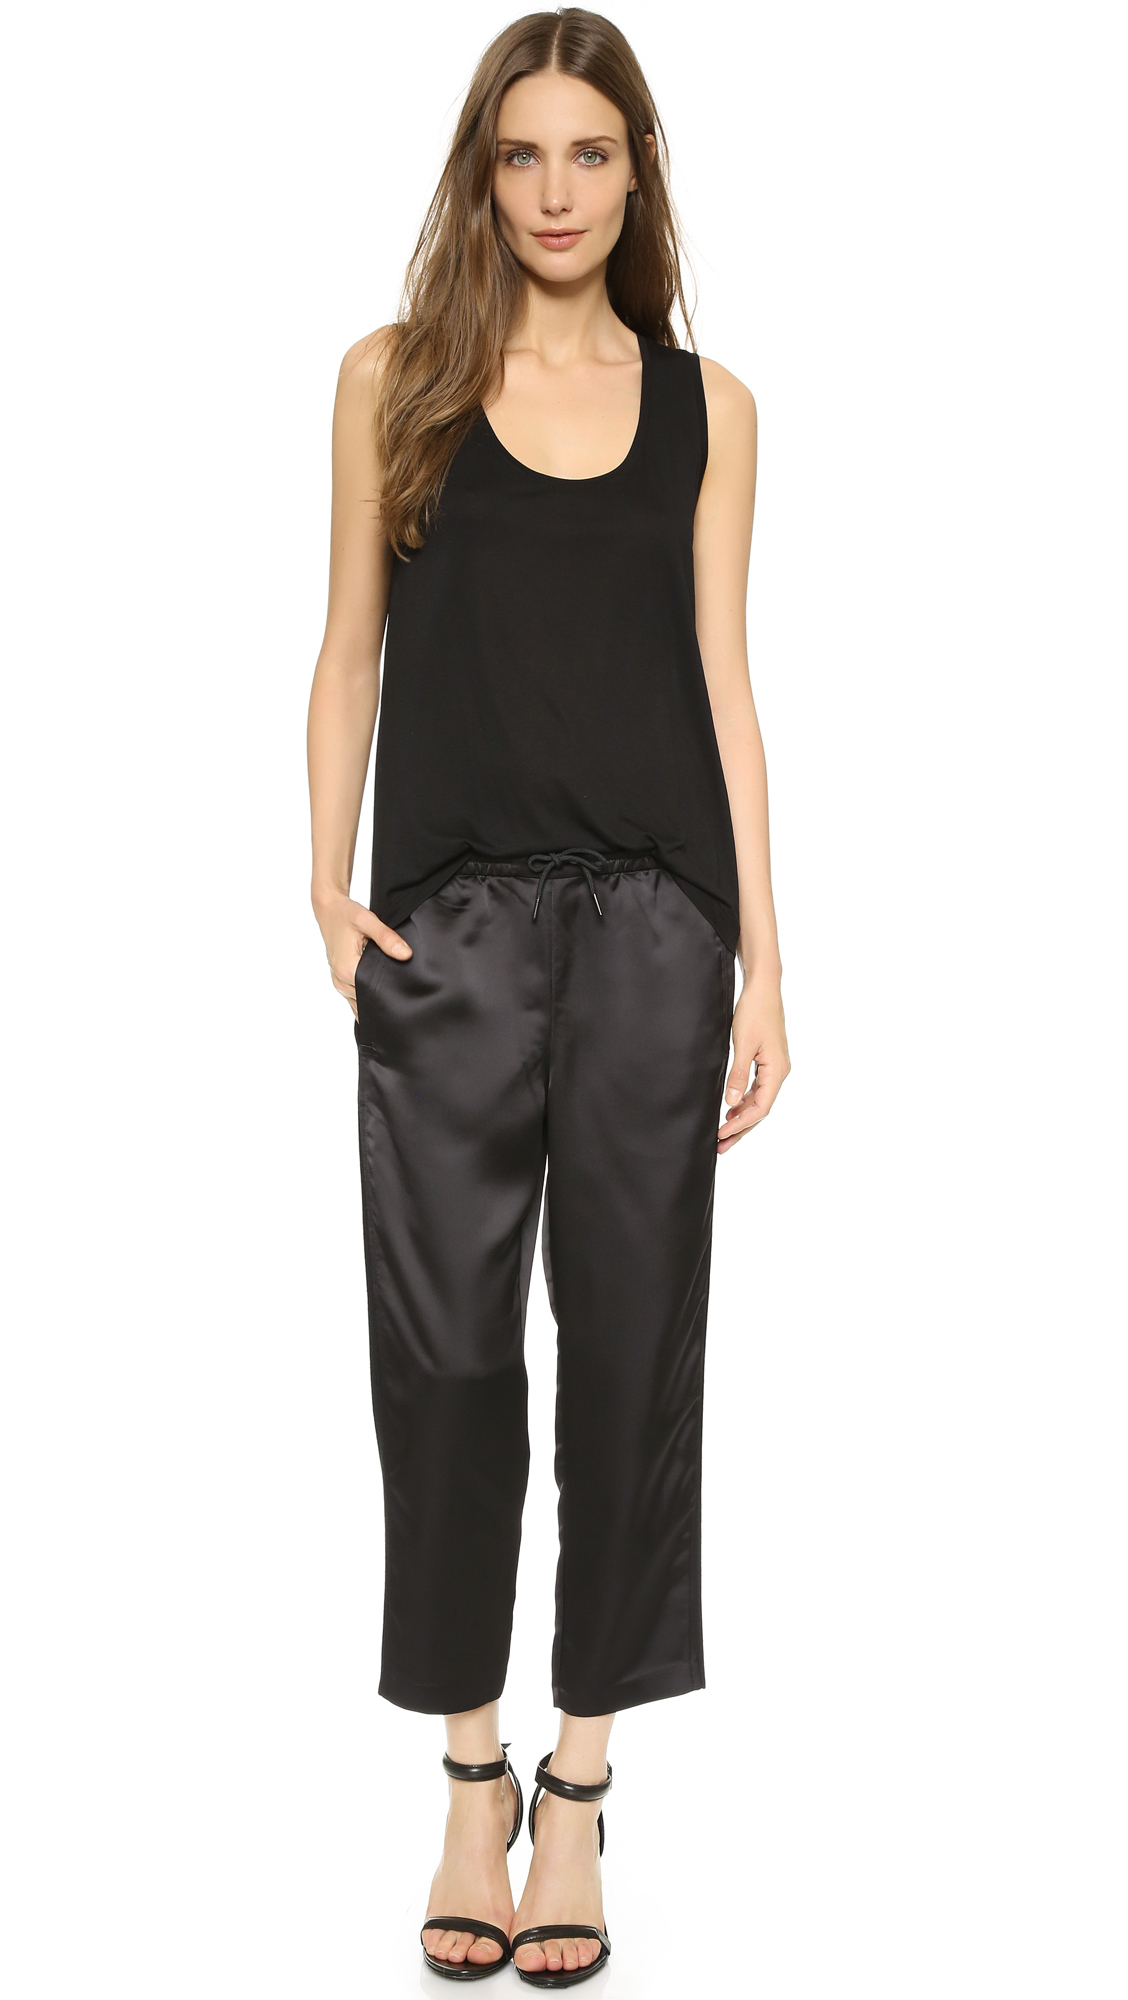 lyst t by alexander wang satin track pants black in black. Black Bedroom Furniture Sets. Home Design Ideas